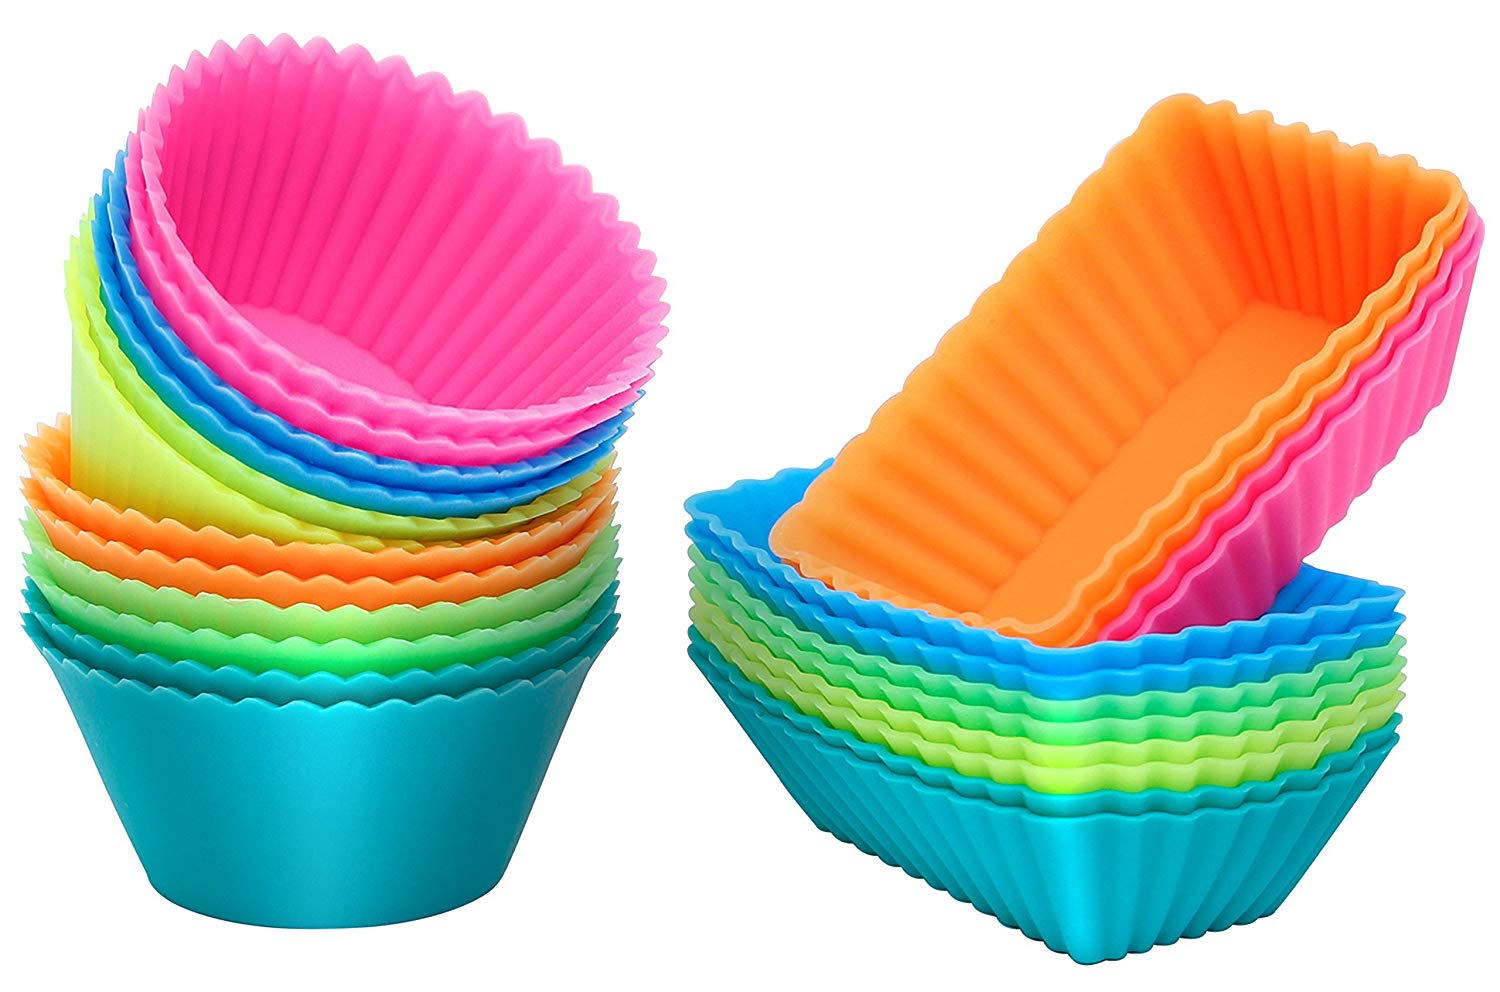 Ipow thicken silicone muffin cups